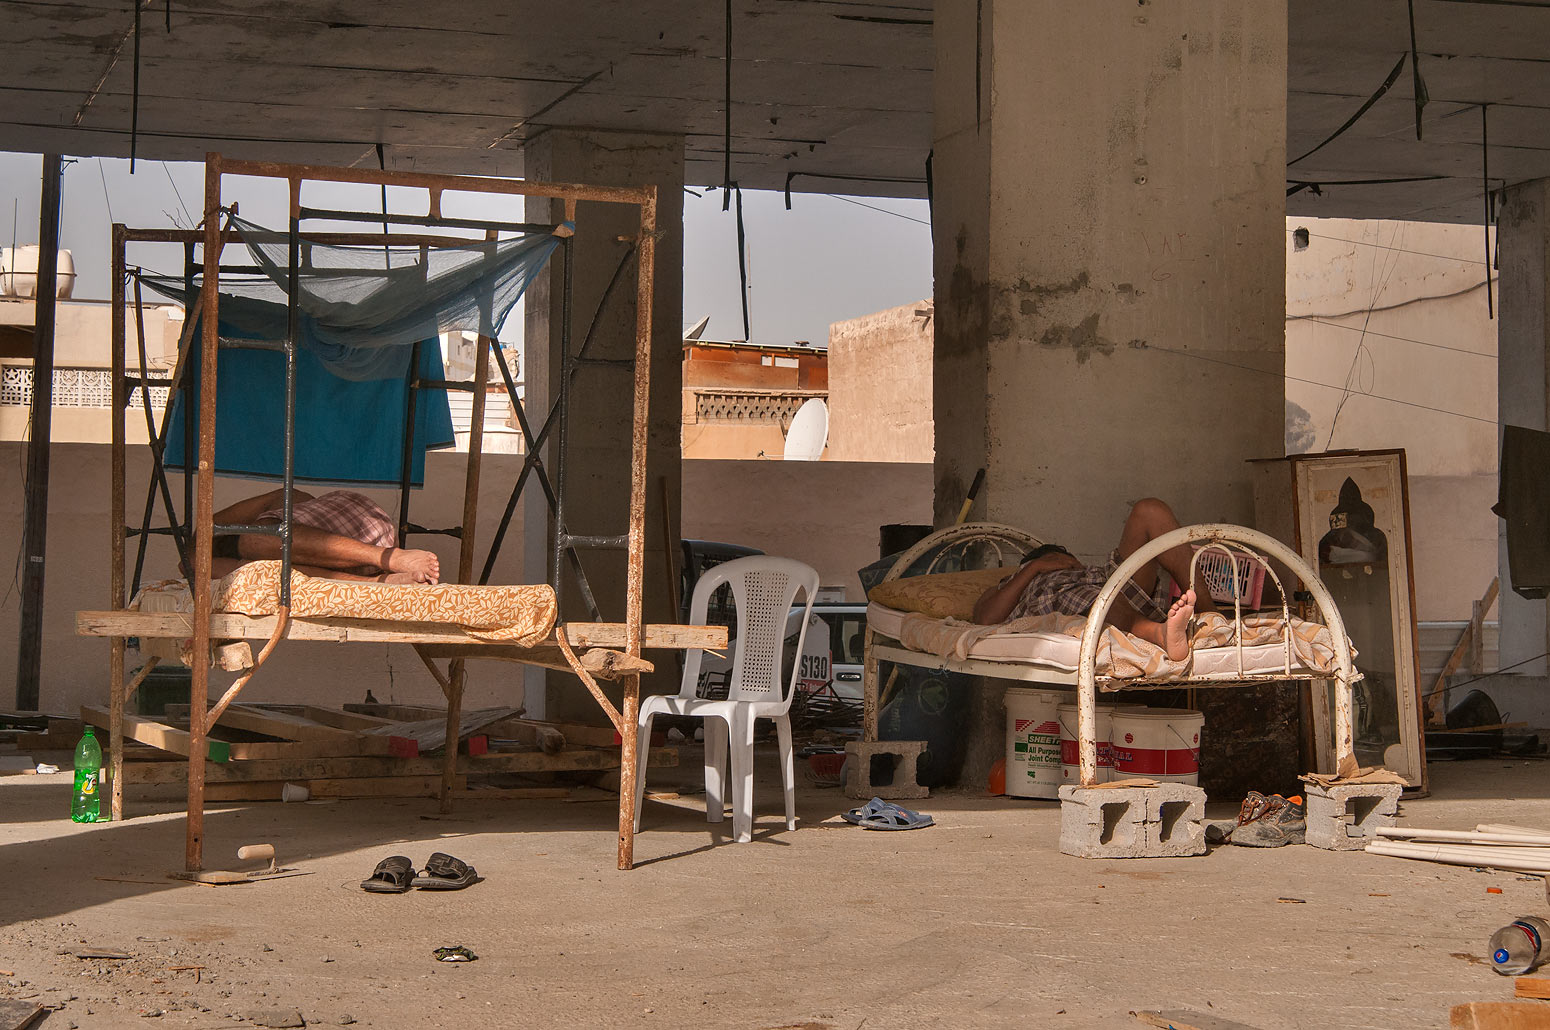 Workers sleeping in a temporary accommodation in...Dawakhil St., Najma area. Doha, Qatar